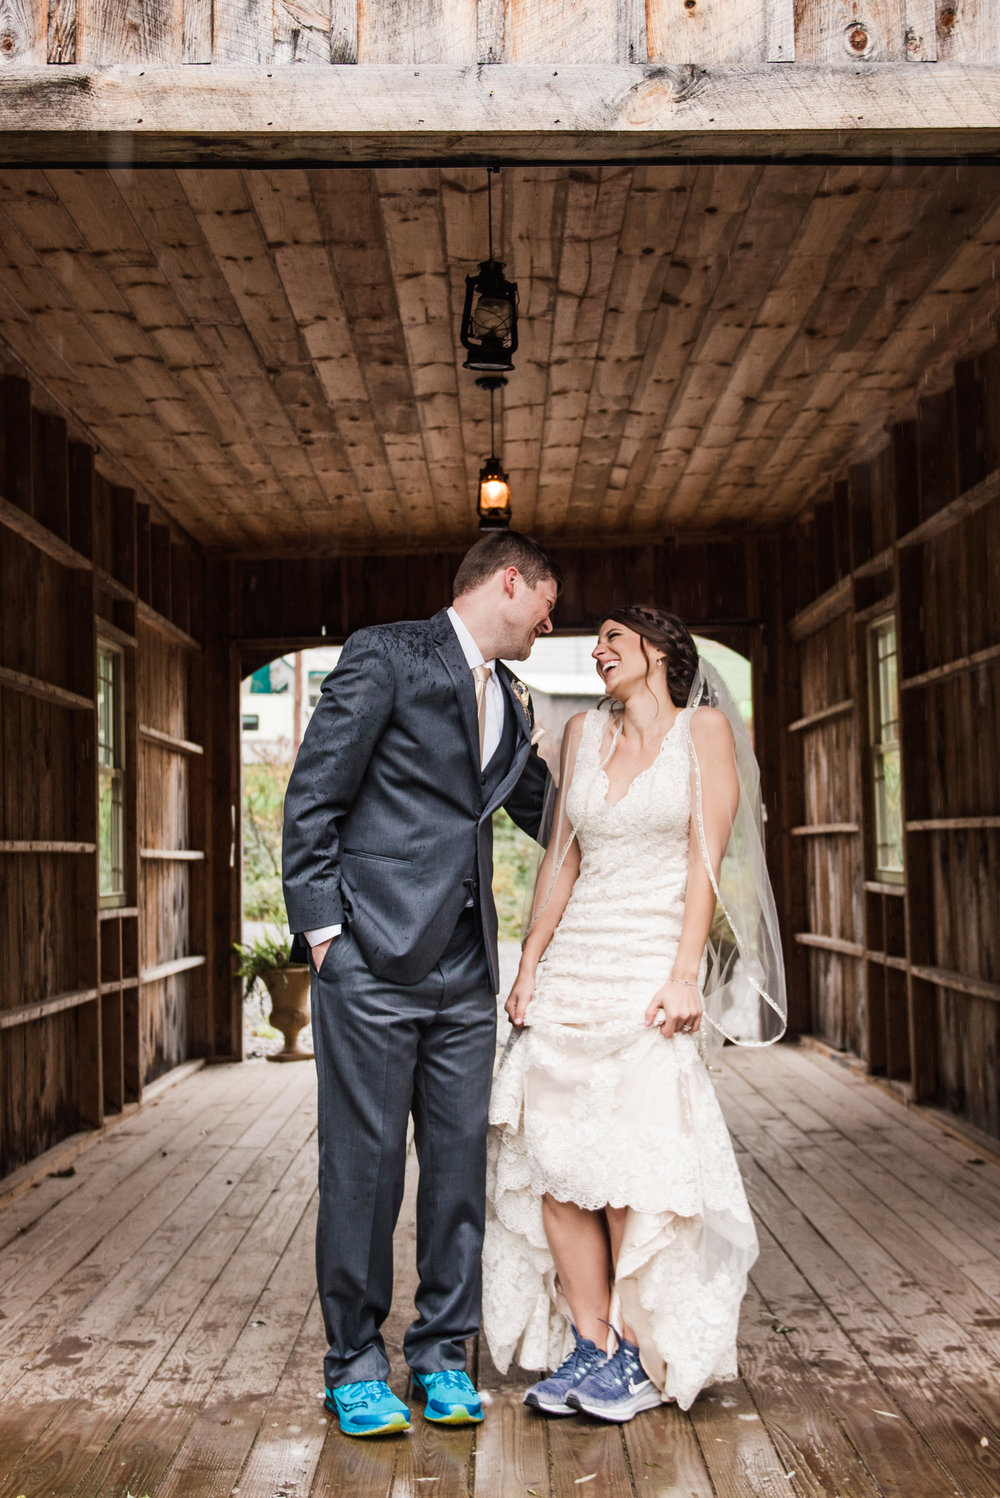 Wolf_Oak_Acres_Central_NY_Wedding_JILL_STUDIO_Rochester_NY_Photographer_DSC_7522.jpg